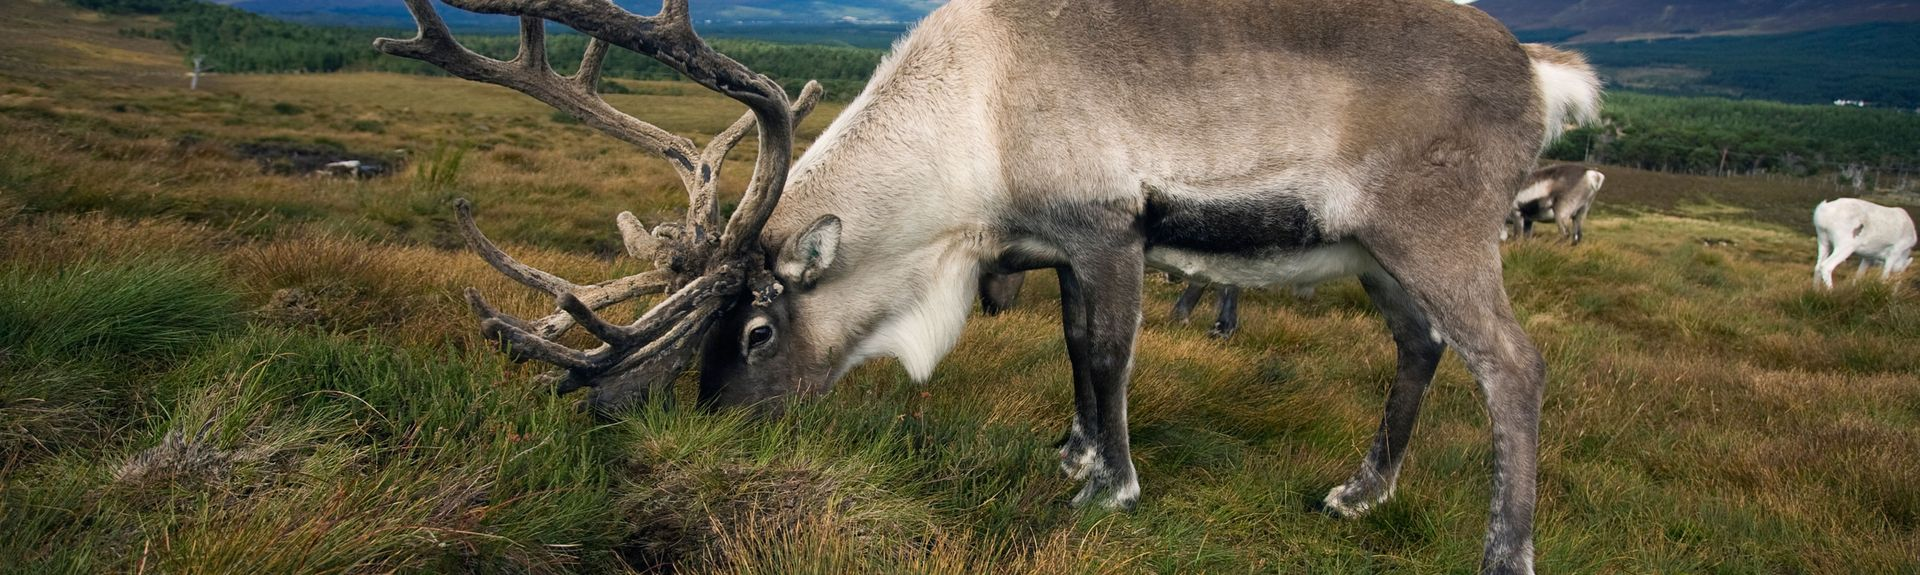 Cairngorms National Park, GB holiday lettings for 2019